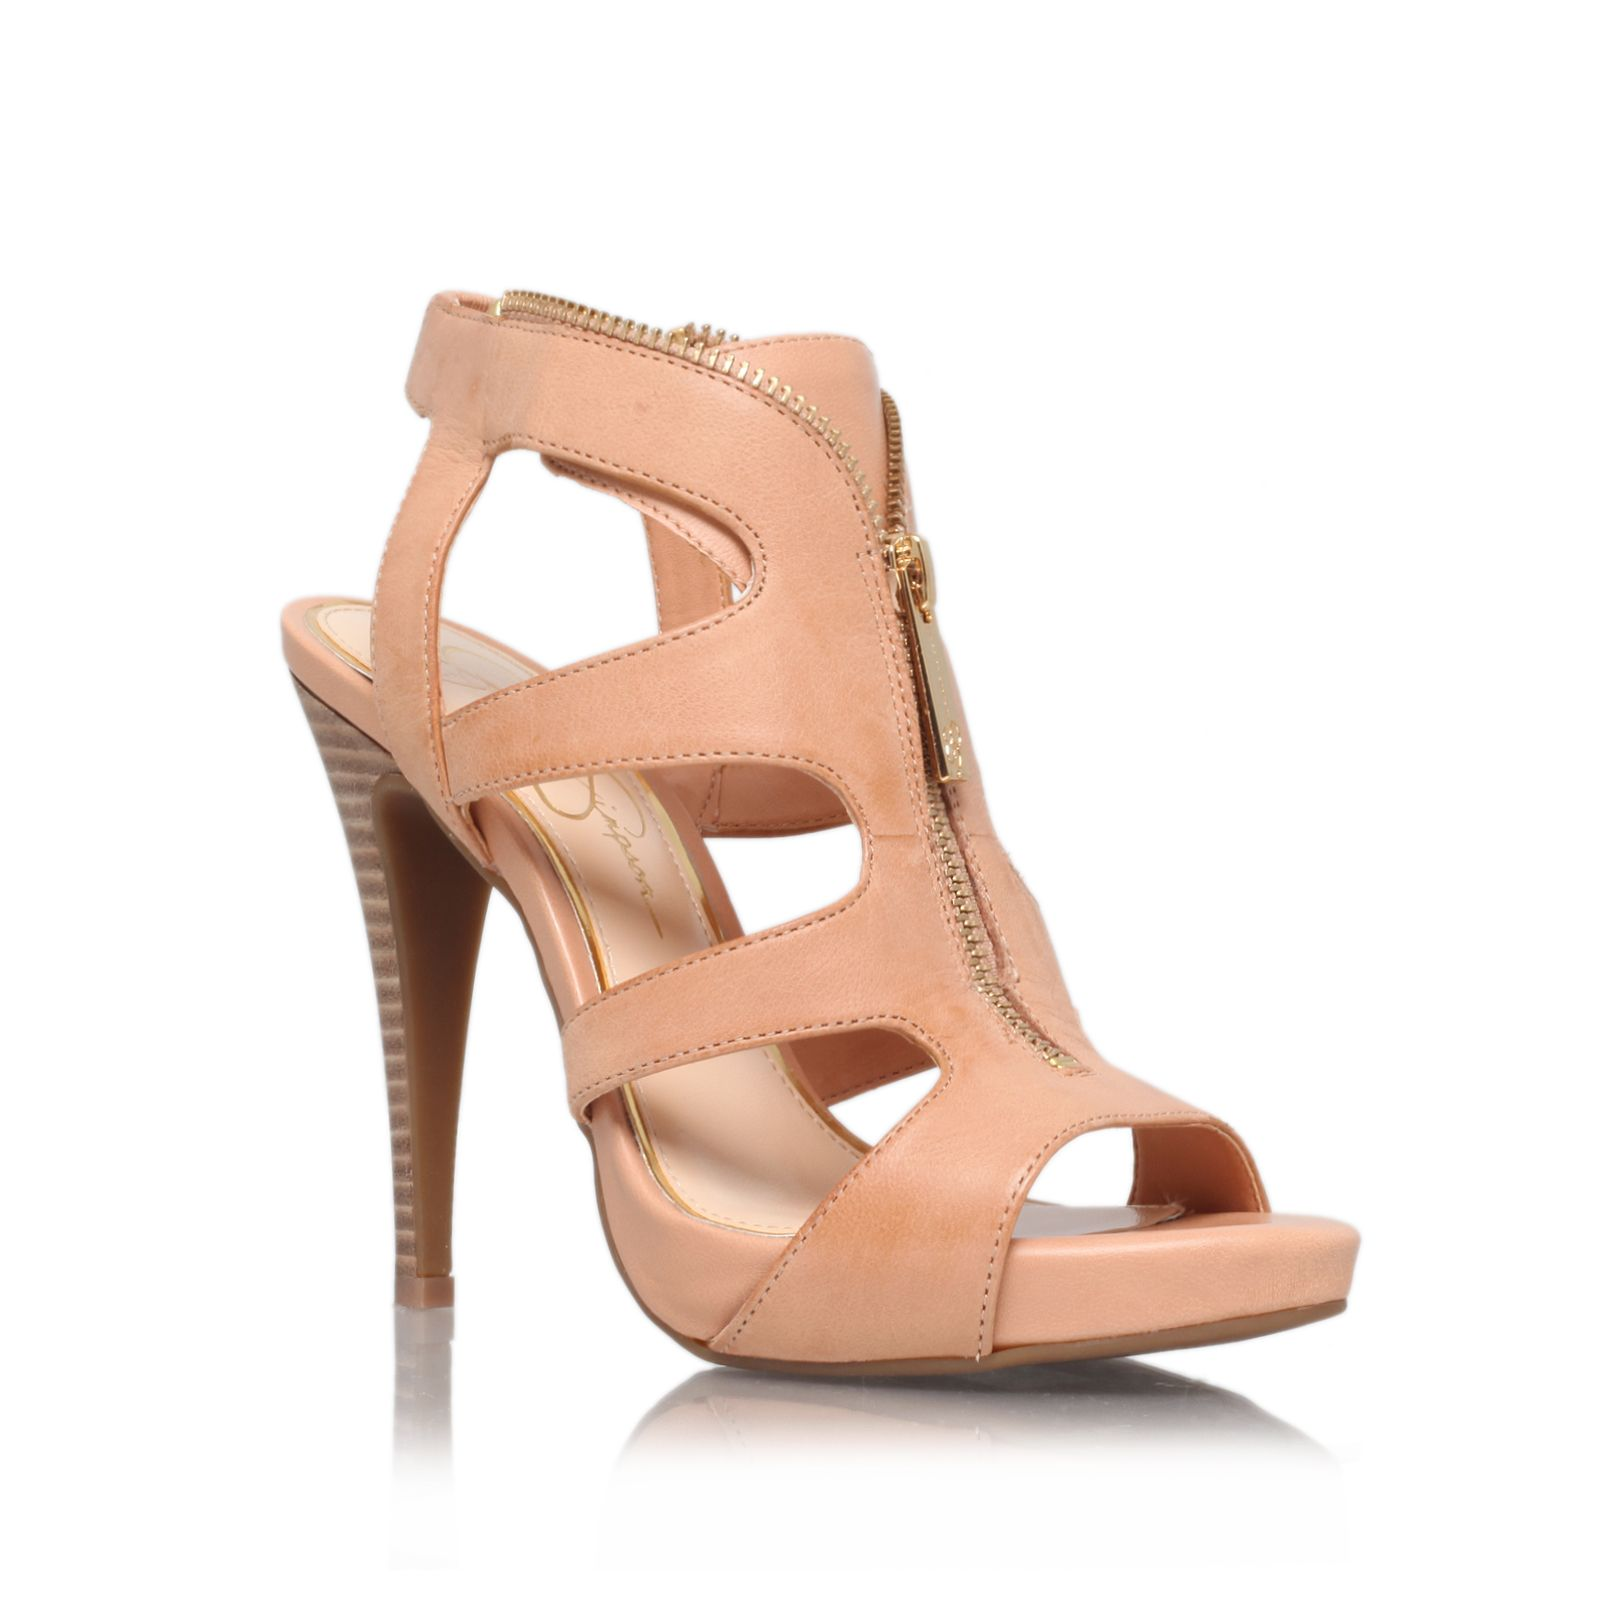 Carmyne high heel sandals